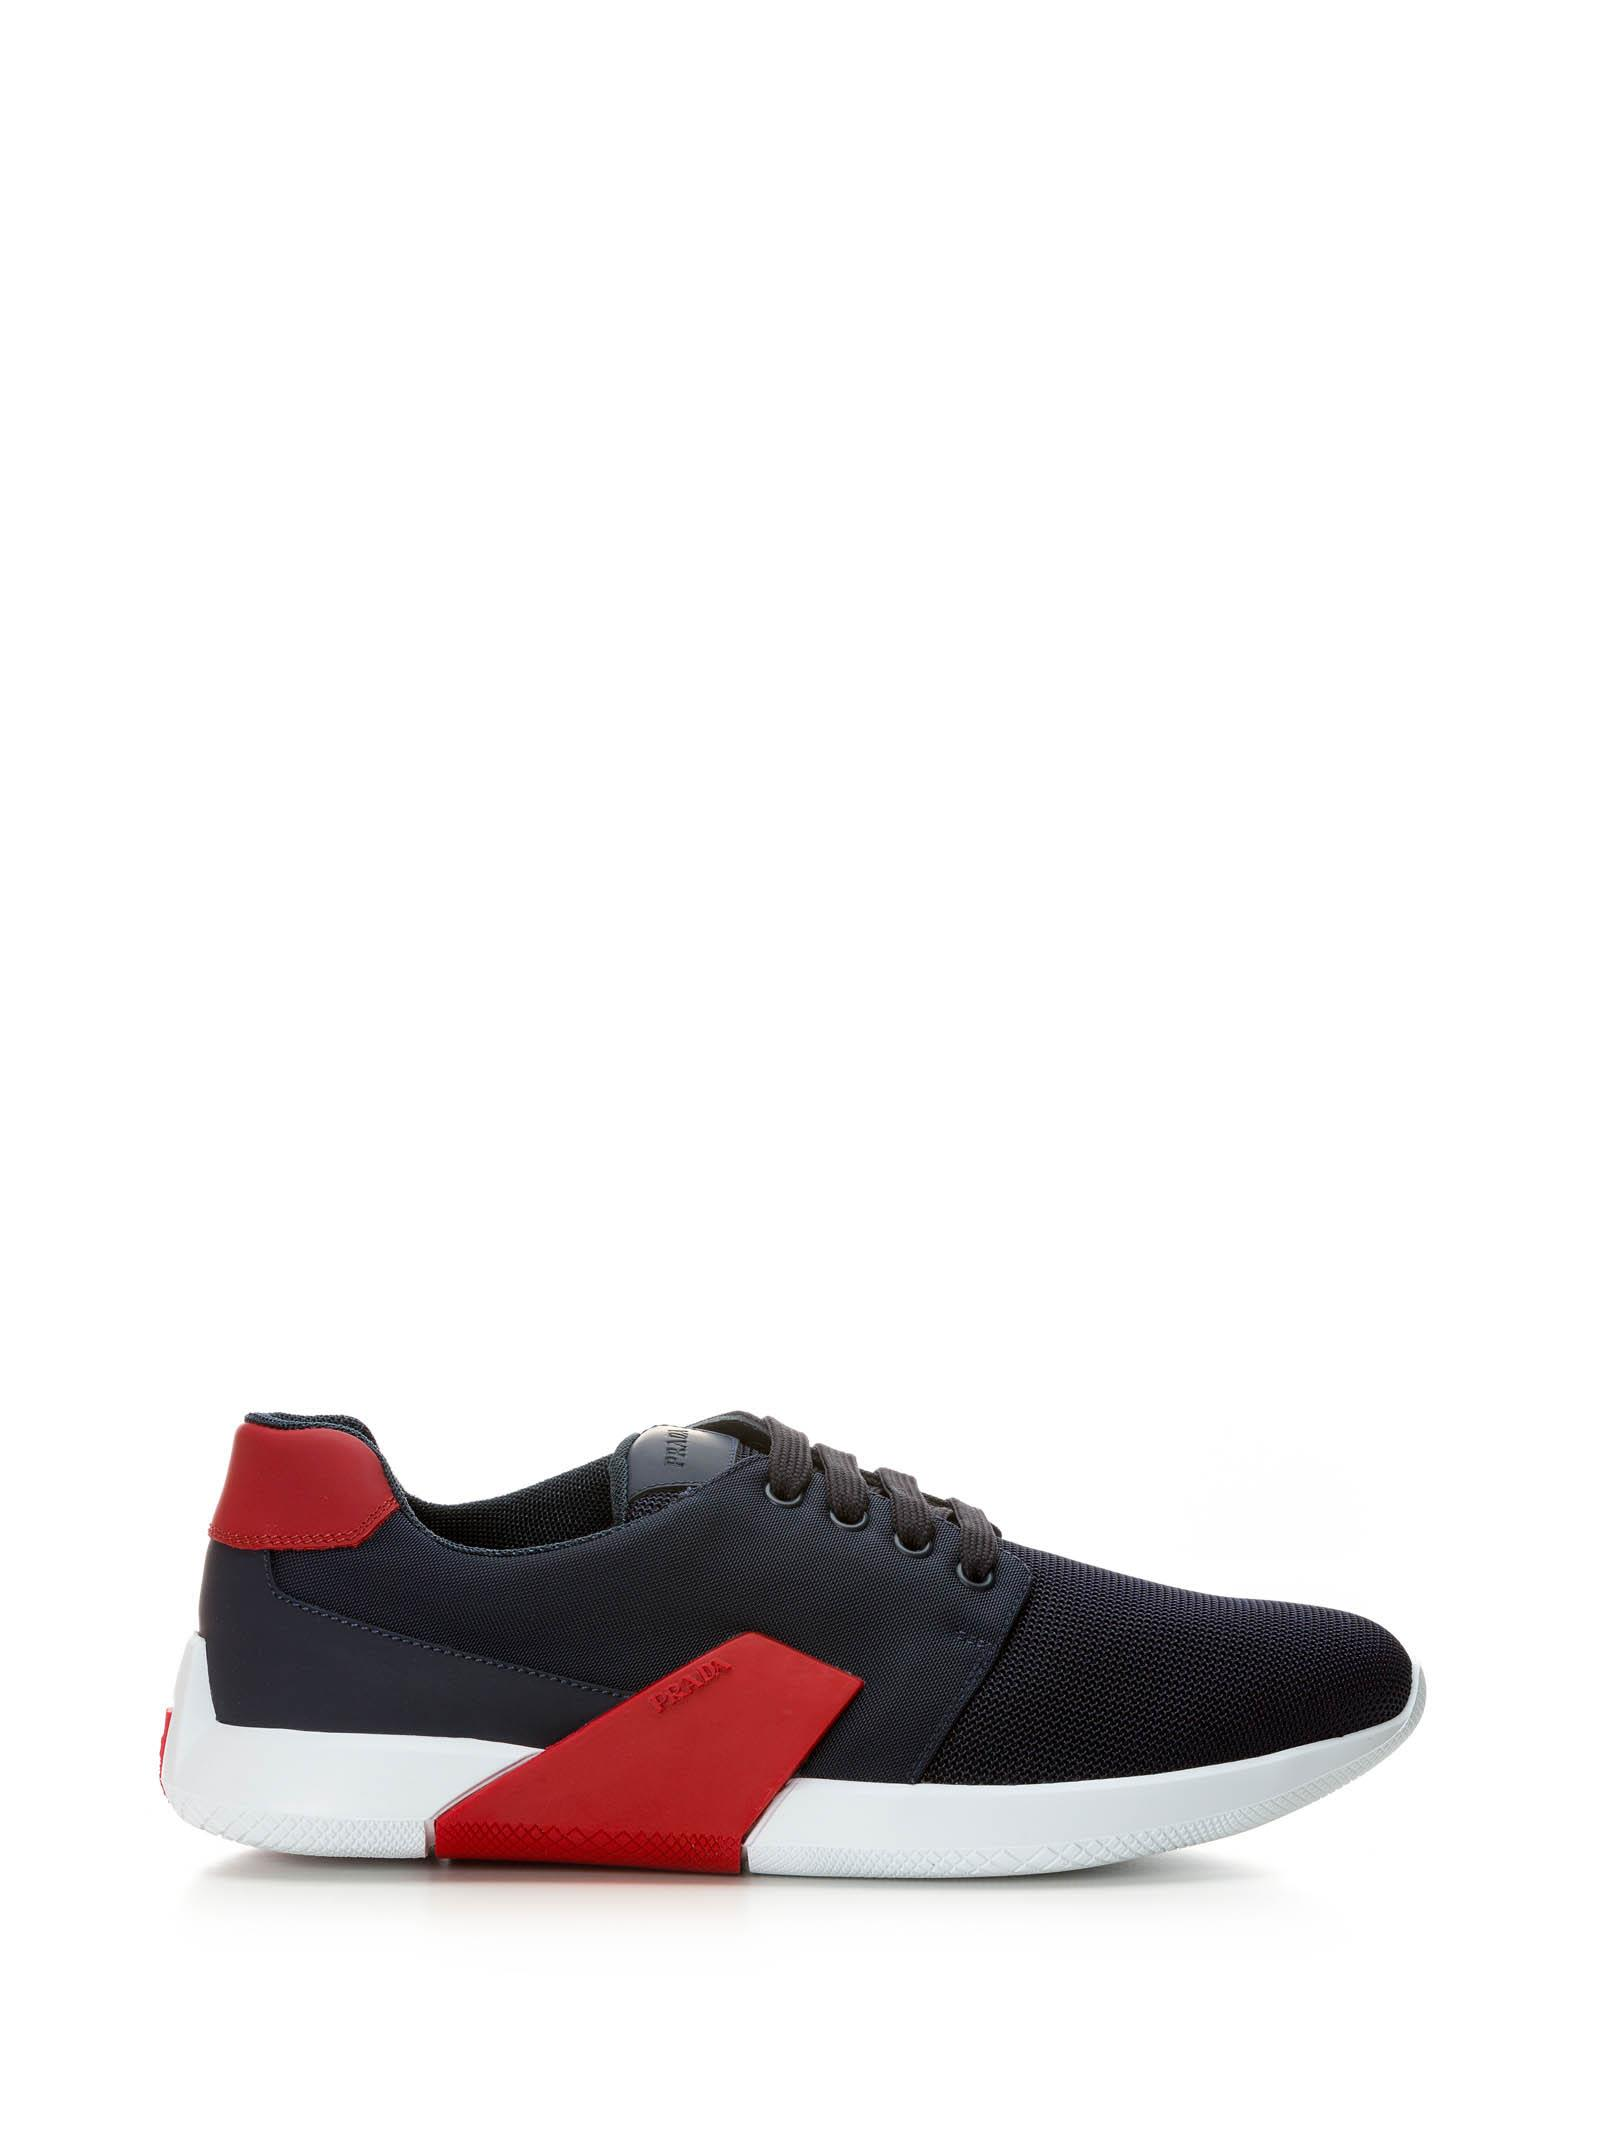 PRADA DOUBLE MICRO-OPERATED CANVAS SNEAKERS SHOES